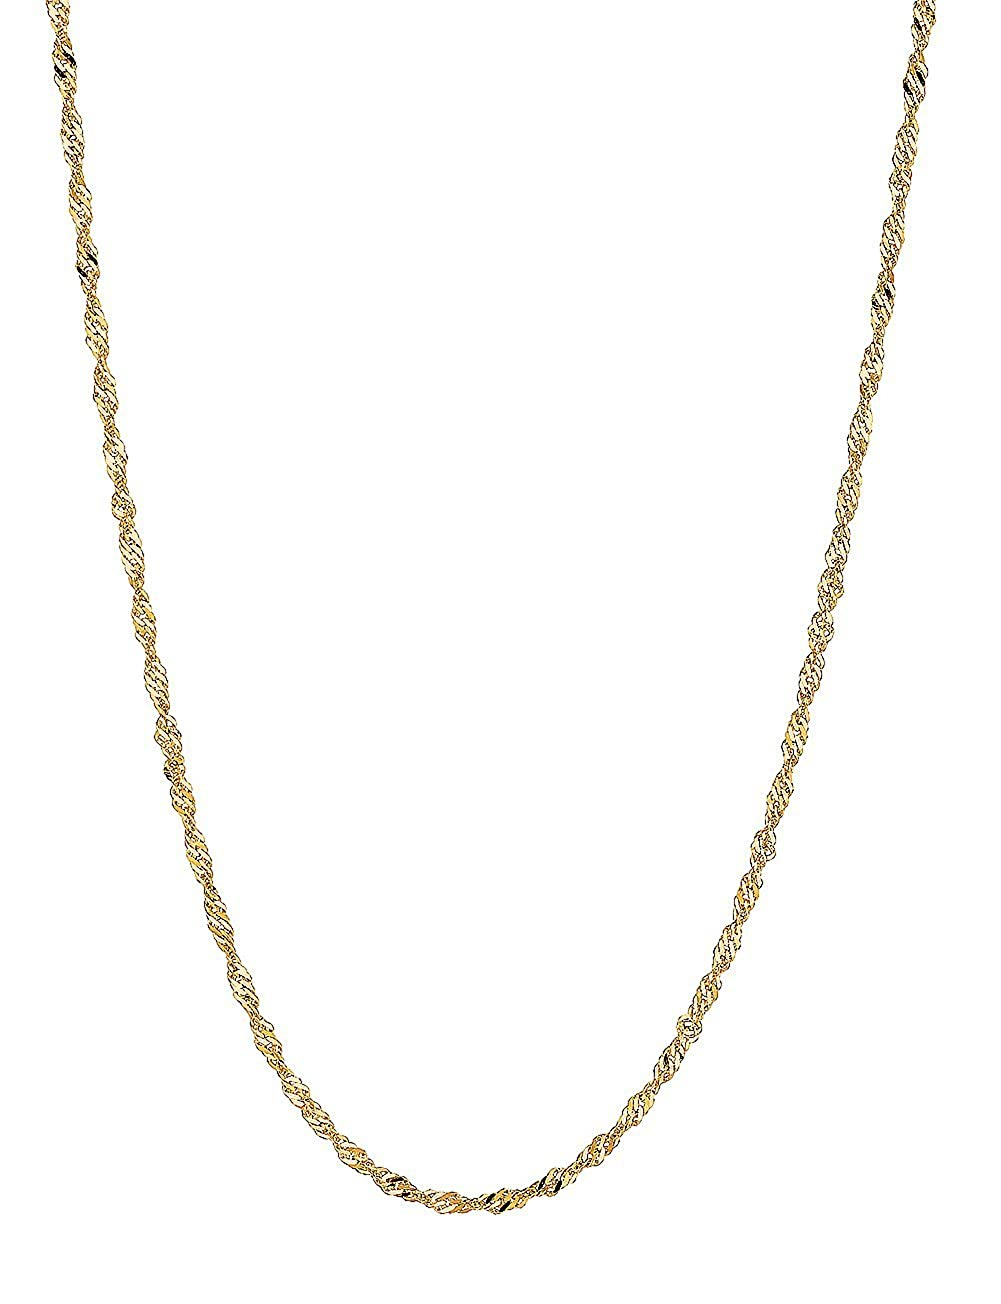 14k Solid Yellow And White Gold Singapore Rope Chain Necklace 1mm 18 Inches Ritastephens